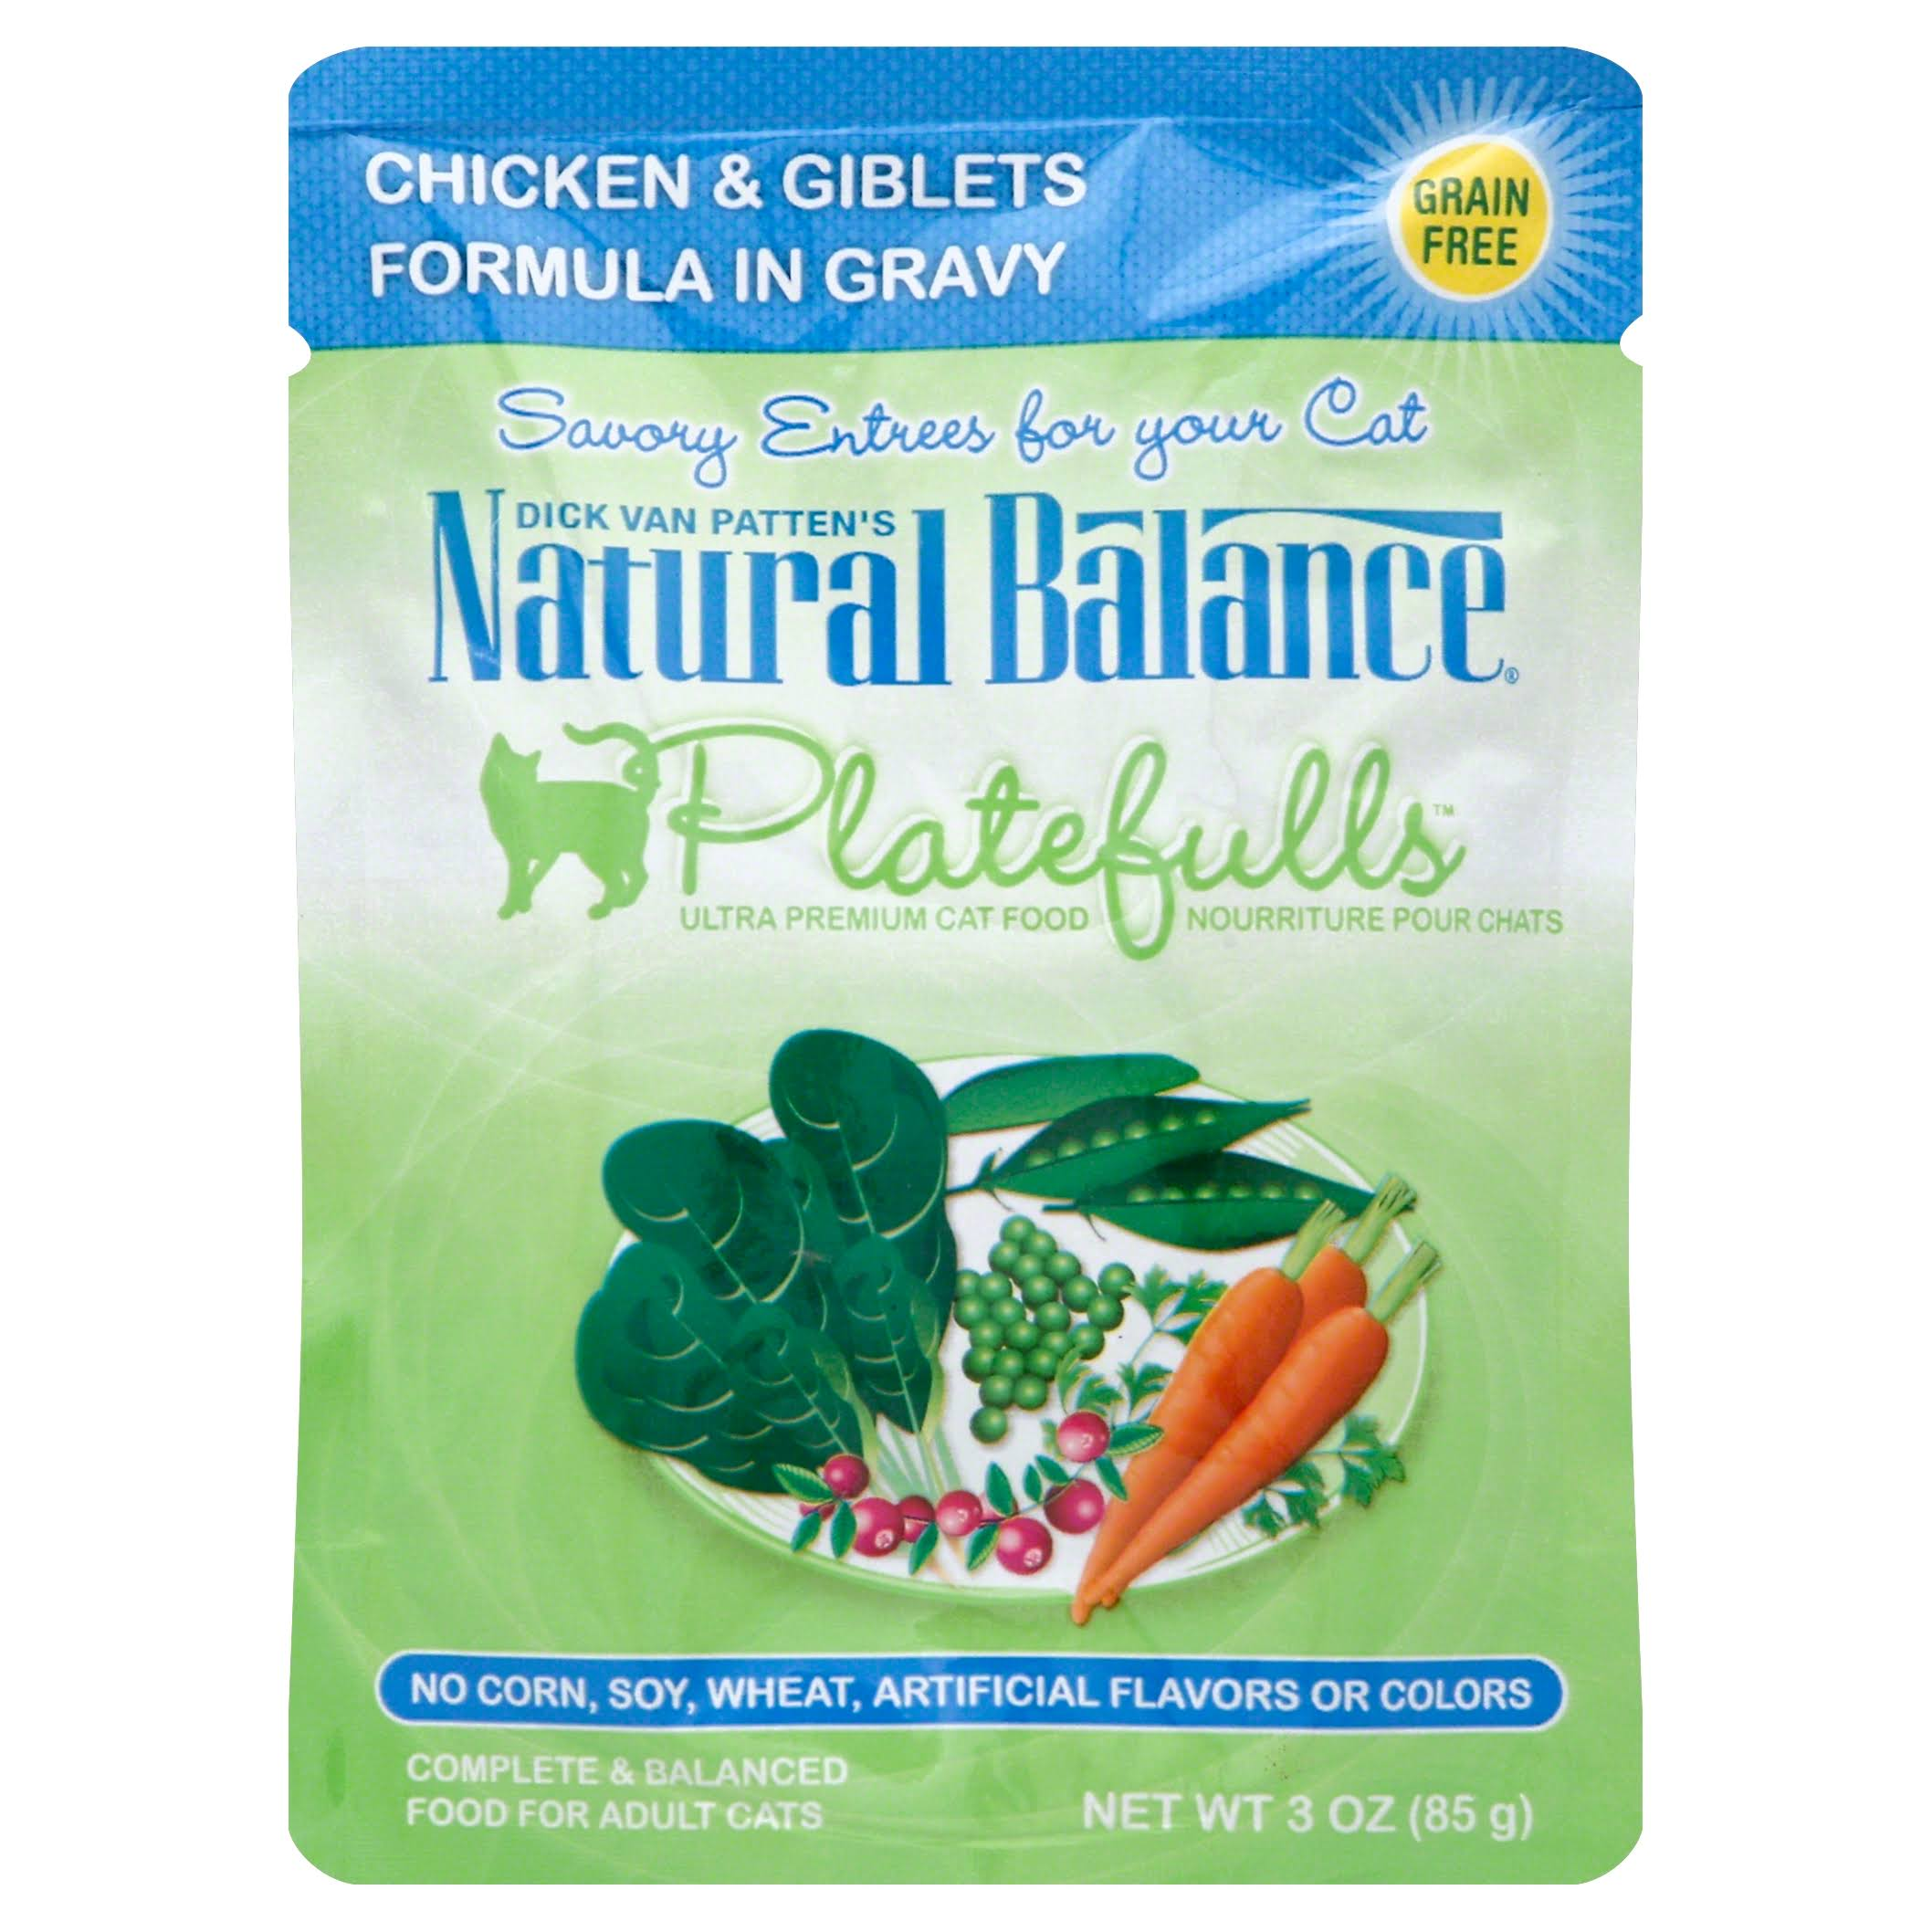 Platefulls Chicken & Giblets Adult Cat Food